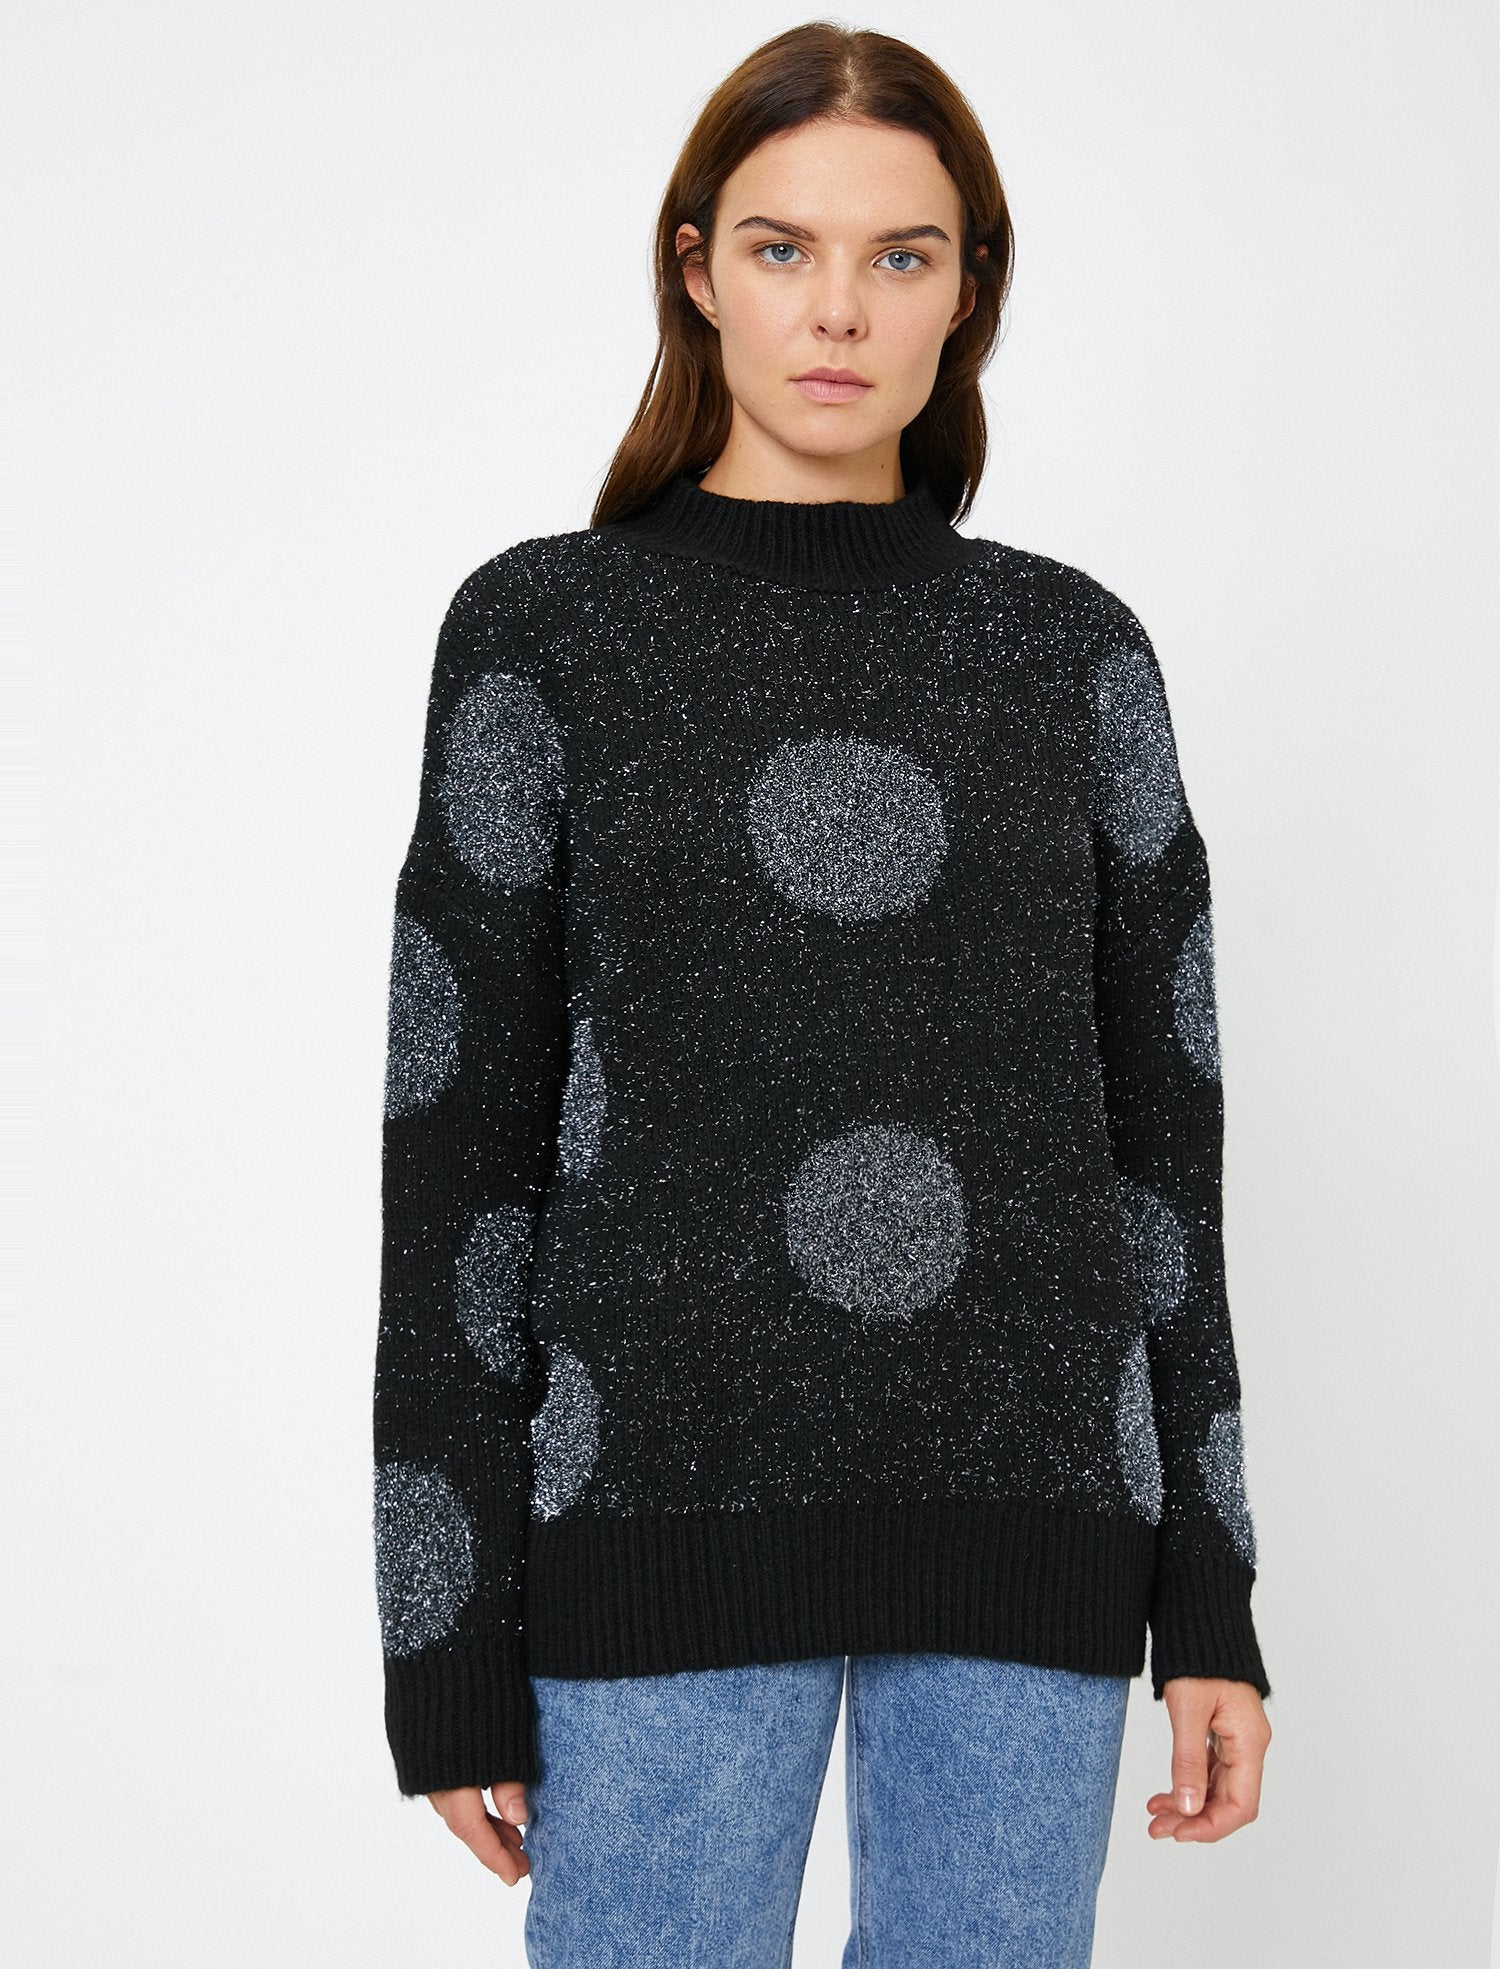 Shimmered Round Neck Sweater in Silver